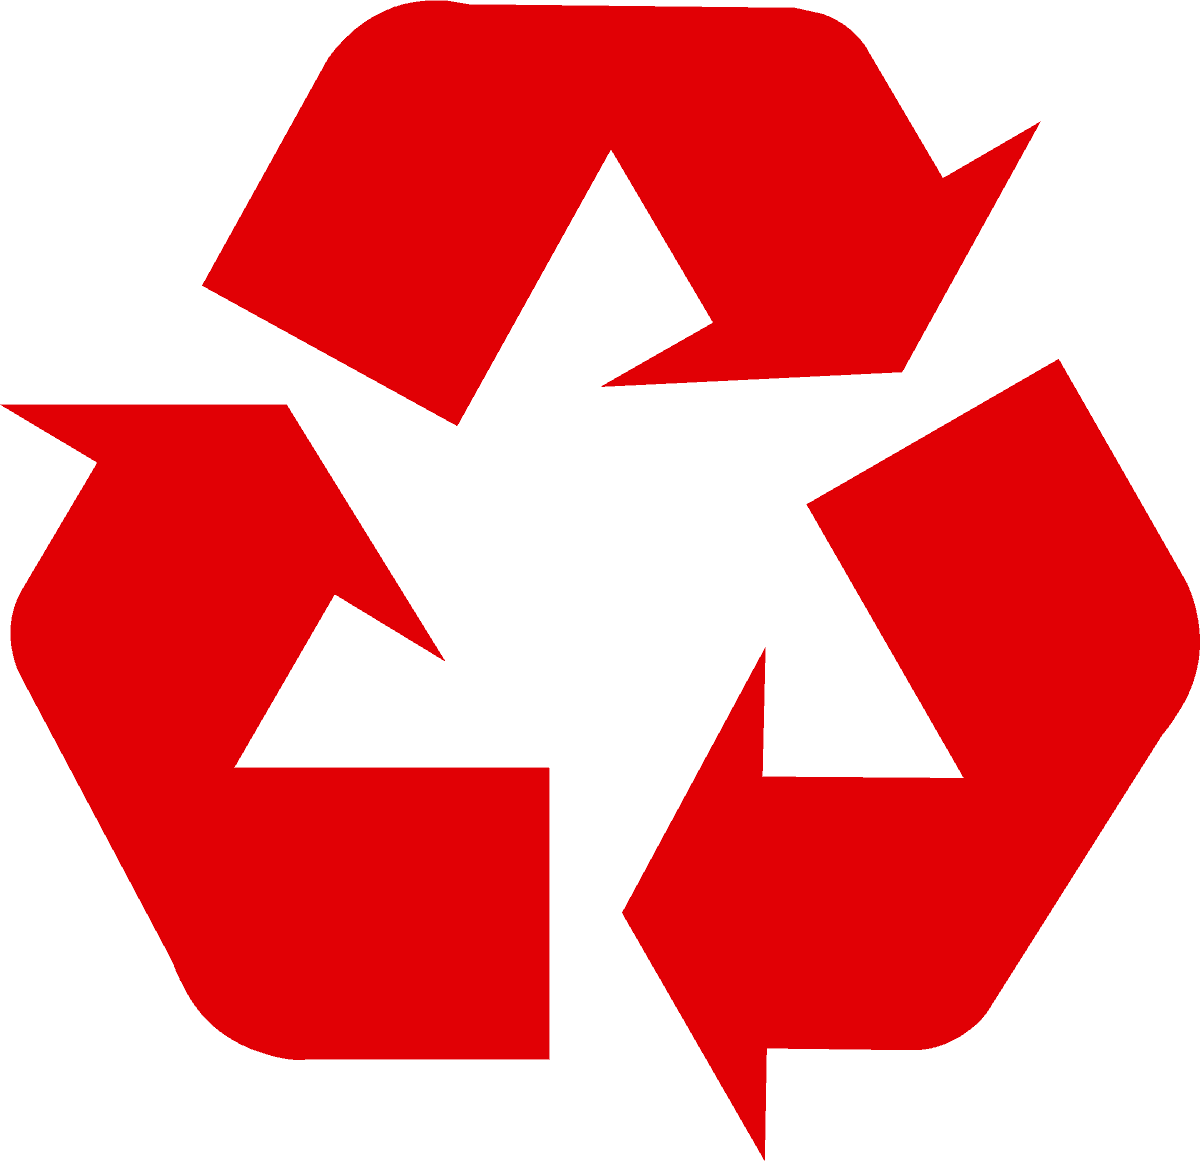 recycling-symbol-icon-solid-red